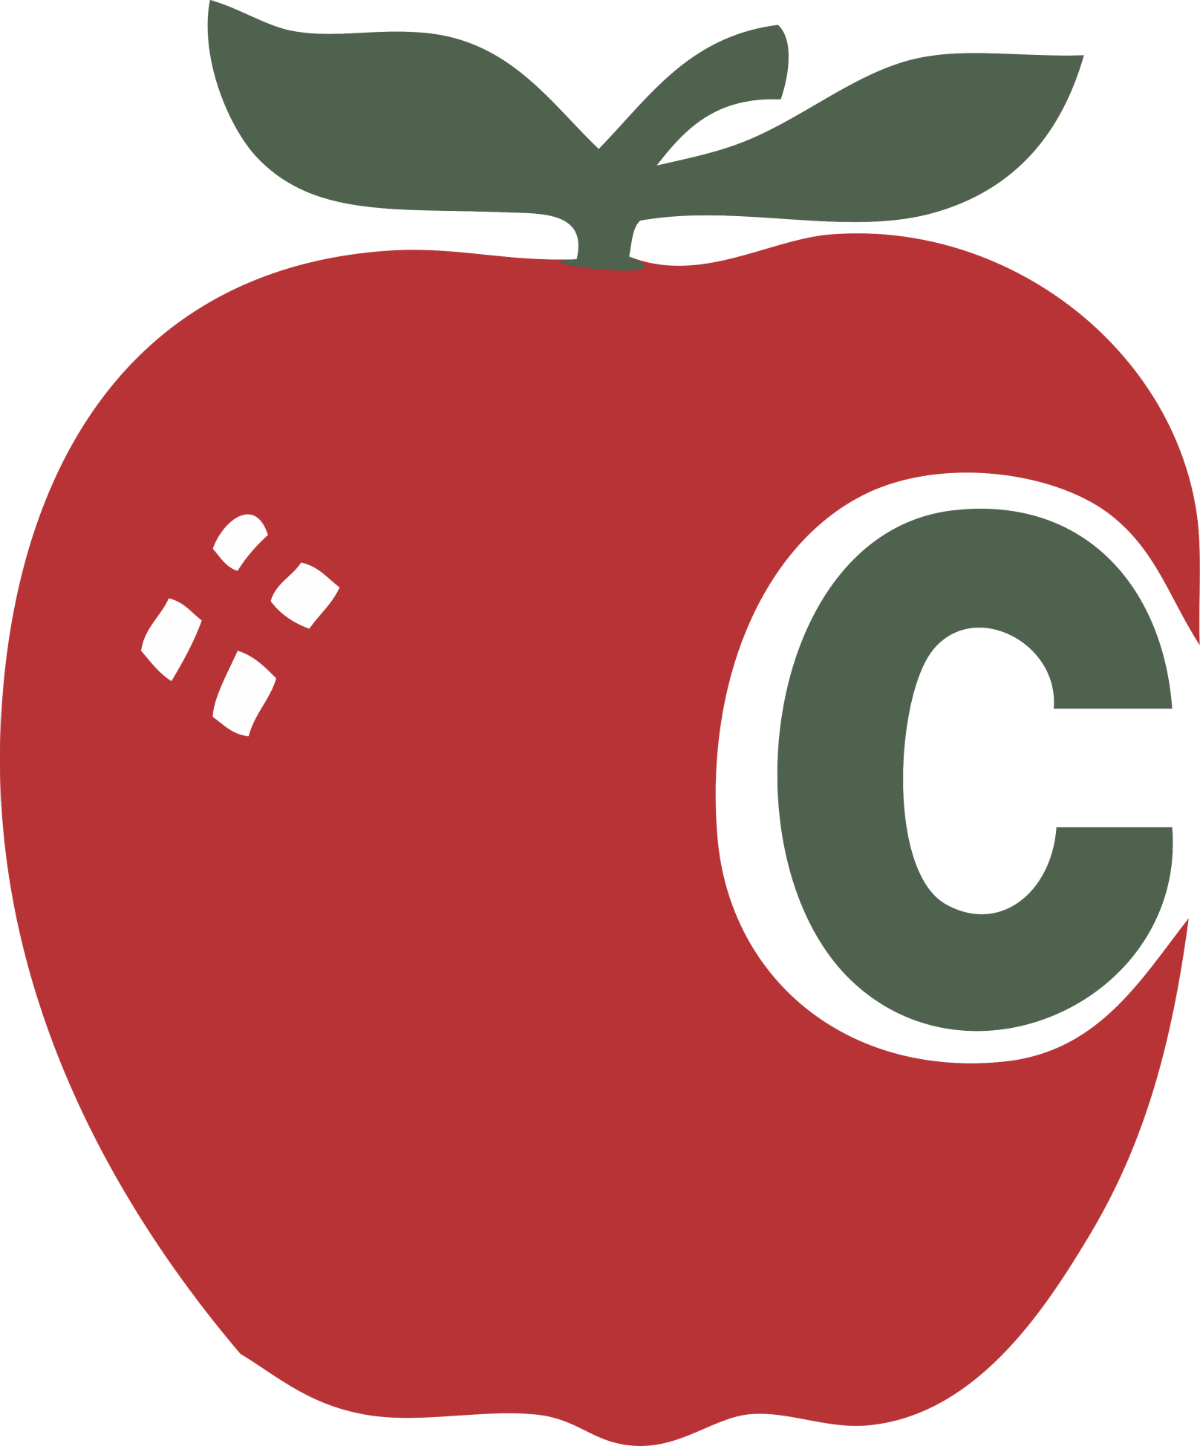 Apple orchard transparent clipart free download Champaign-Urbana Weekend Planner August 26-28 Sponsored by Curtis ... free download